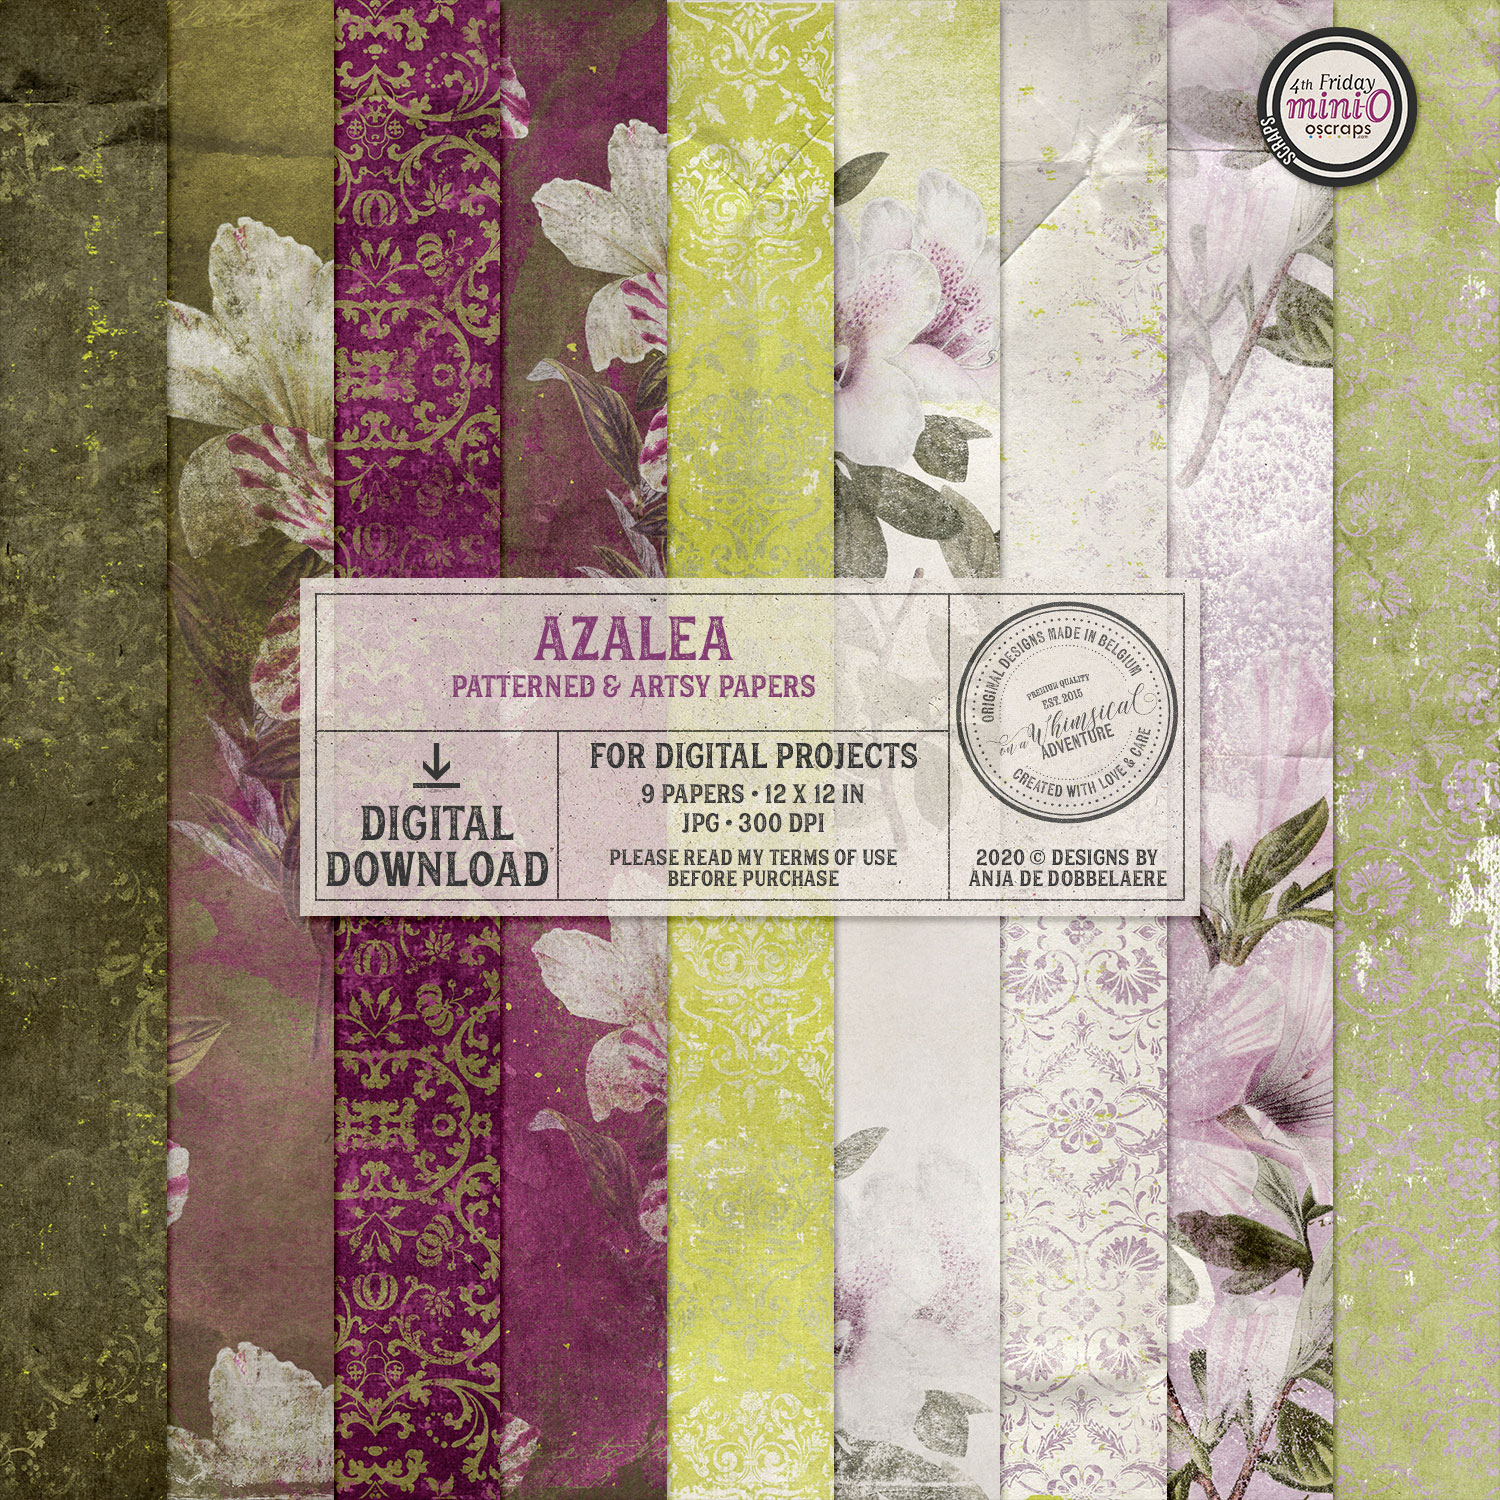 Azalea Patterned & Artsy Papers by On A Whimsical Adventure